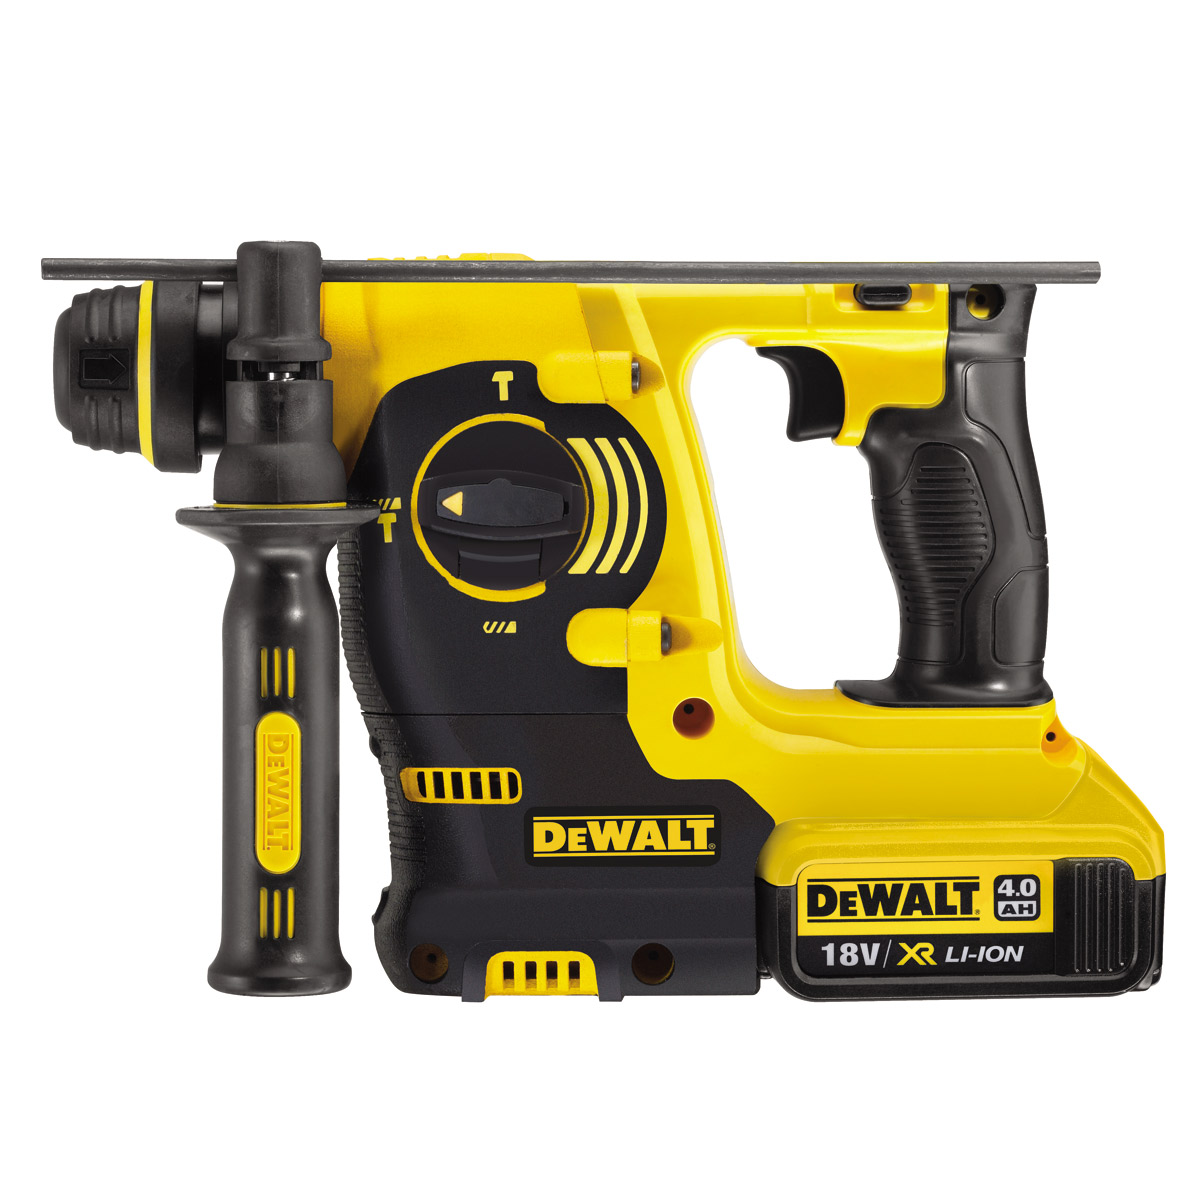 DEWALT DCH253M2 18V 3 FUNCTION SDS+ ROTARY HAMMER DRILL WITH 2 X 4.0AH XR LI-ION BATTERIES